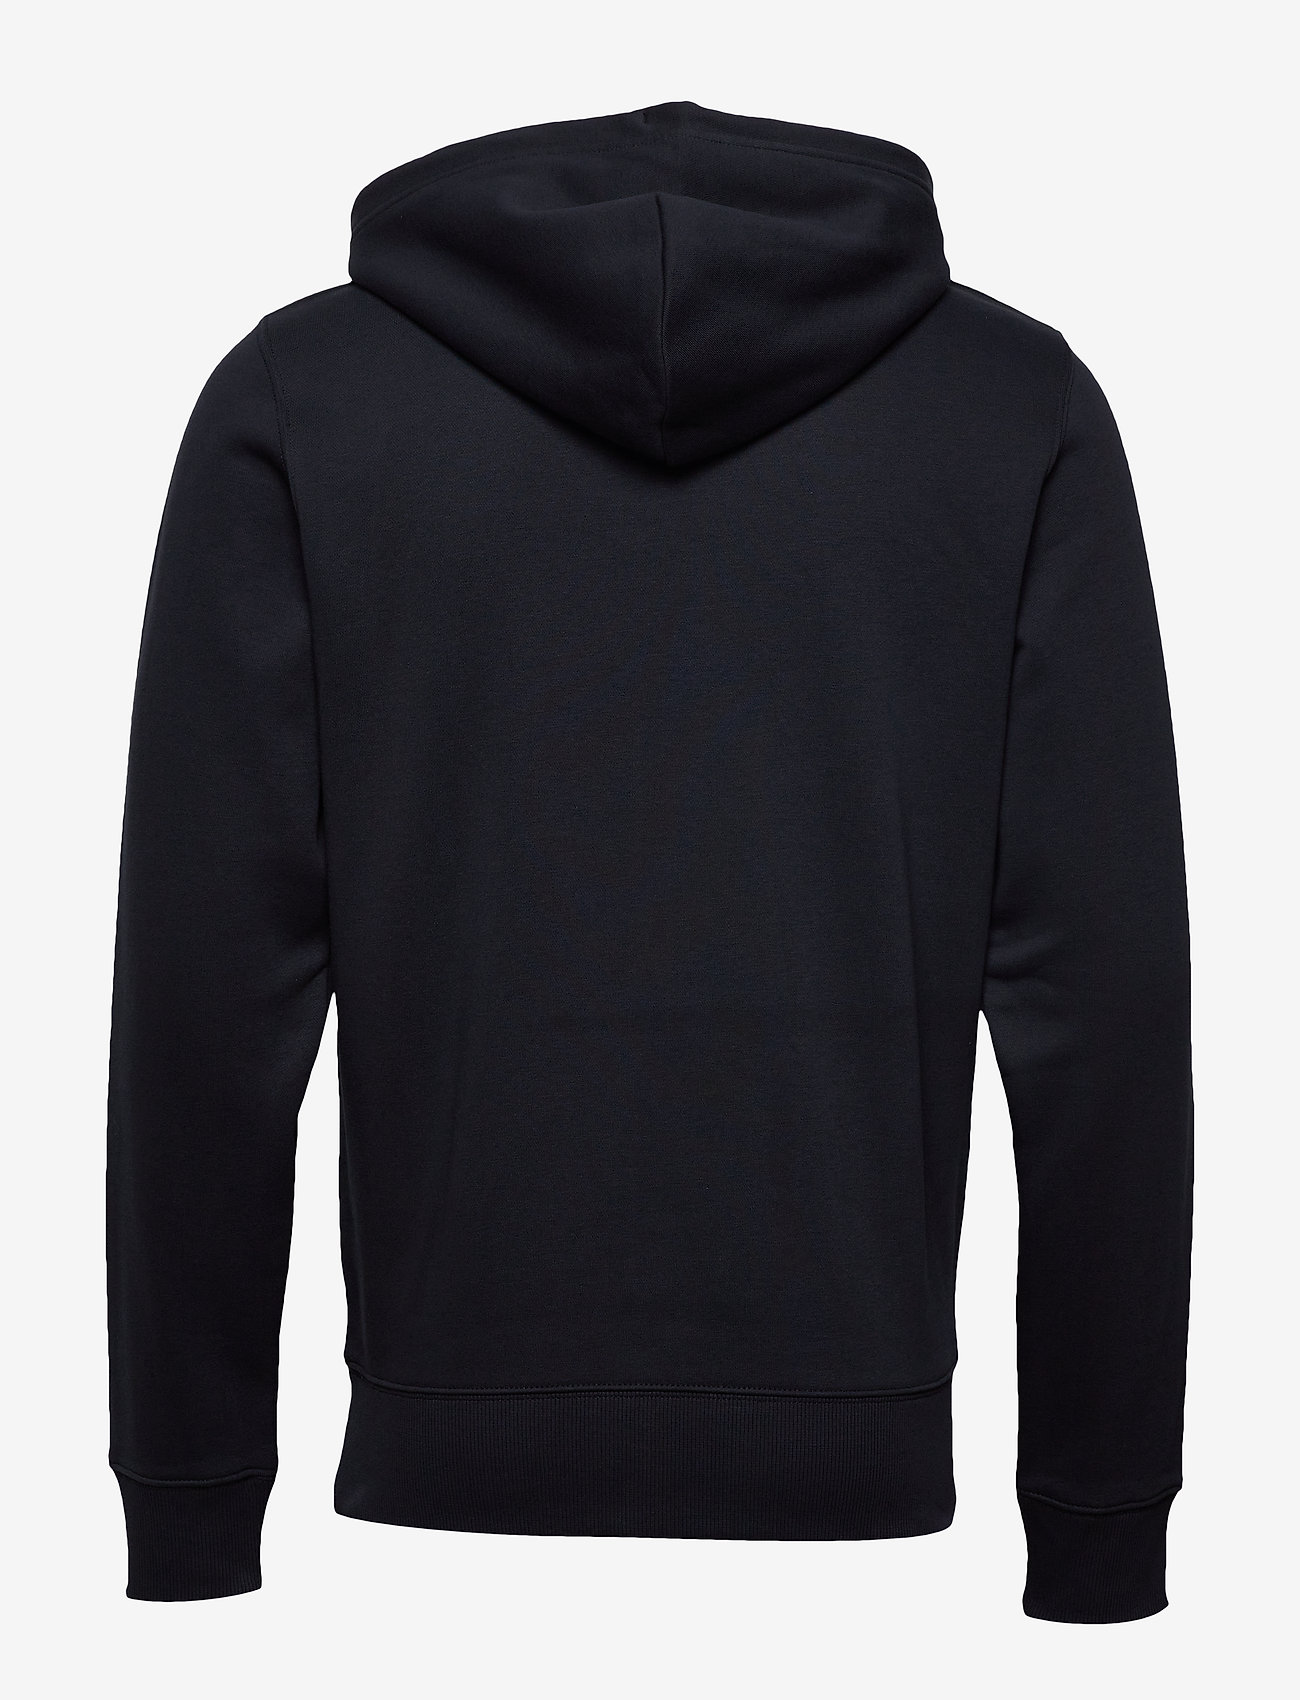 GANT - D1. MEDIUM SHIELD HOODIE - basic sweatshirts - black - 1